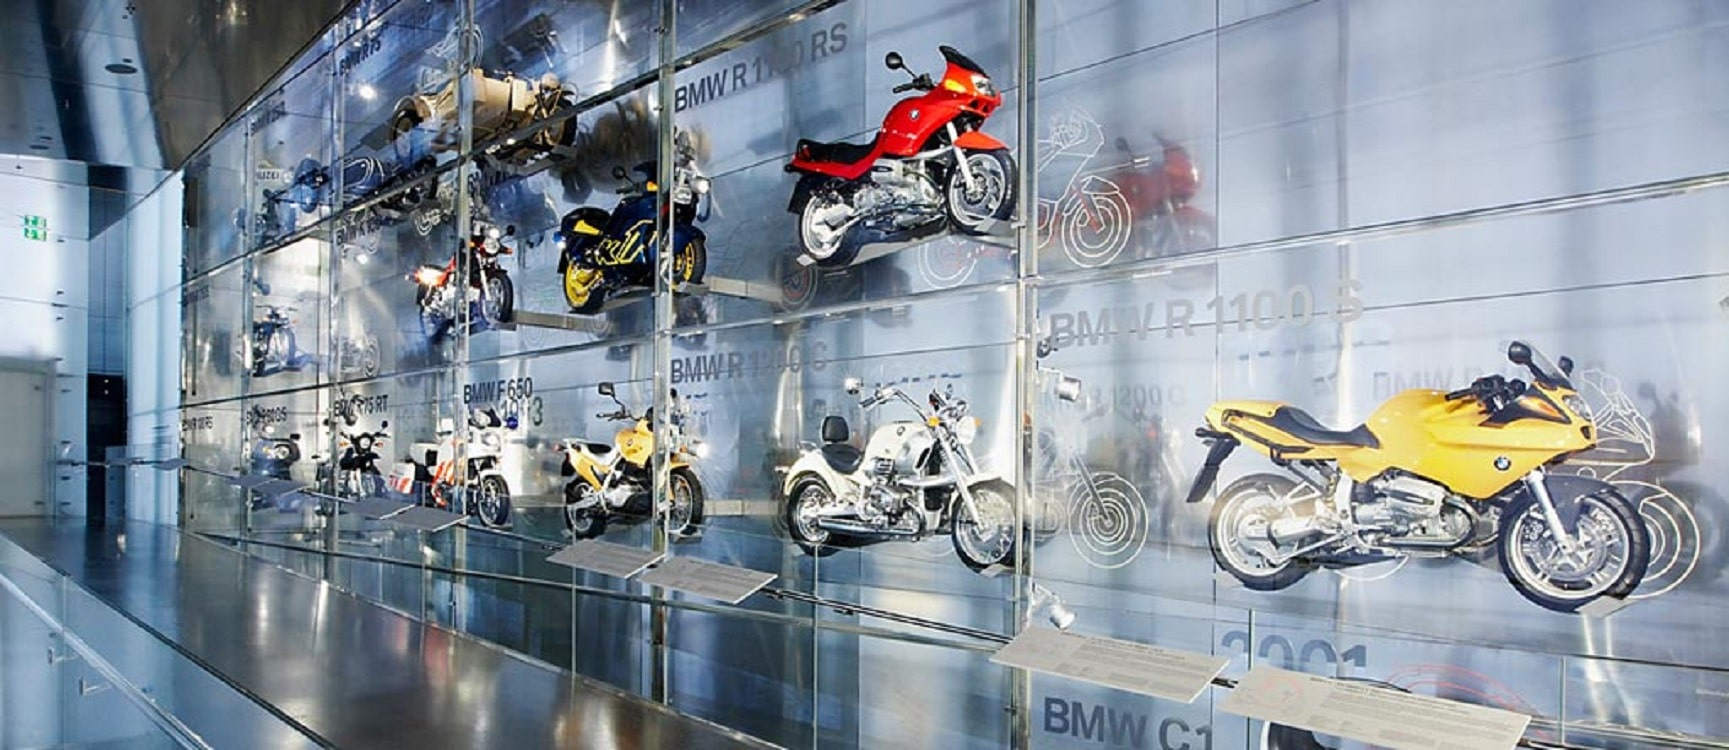 Motociclete expuse vertical